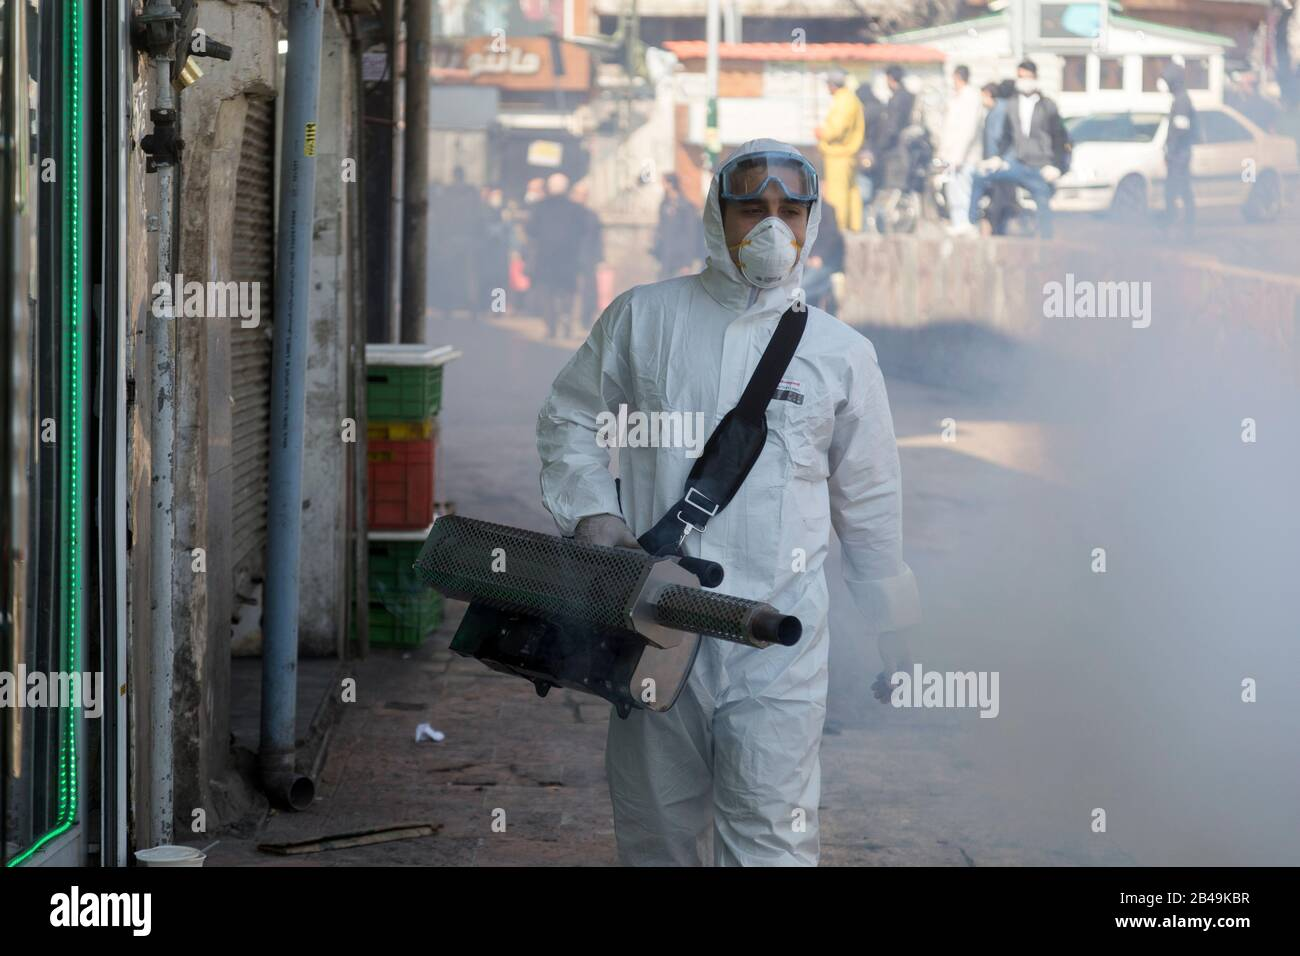 Tehran, Iran. 6th Mar, 2020. Firefighter teams with protective suits disinfect the Tajrish Bazaar as a precaution to the coronavirus (Covid-19) in Tehran, Iran. Iranian officials canceled Friday prayer for the second week due to concerns over the spread of coronavirus and COVID-19. According to the last report by the Ministry of Health, there are 4,747 COVID-19 cases in Iran. 147 people have died so far. A Health Ministry spokesman warned authorities could use unspecified 'force' to halt travel between major cities. Credit: Rouzbeh Fouladi/ZUMA Wire/Alamy Live News Stock Photo